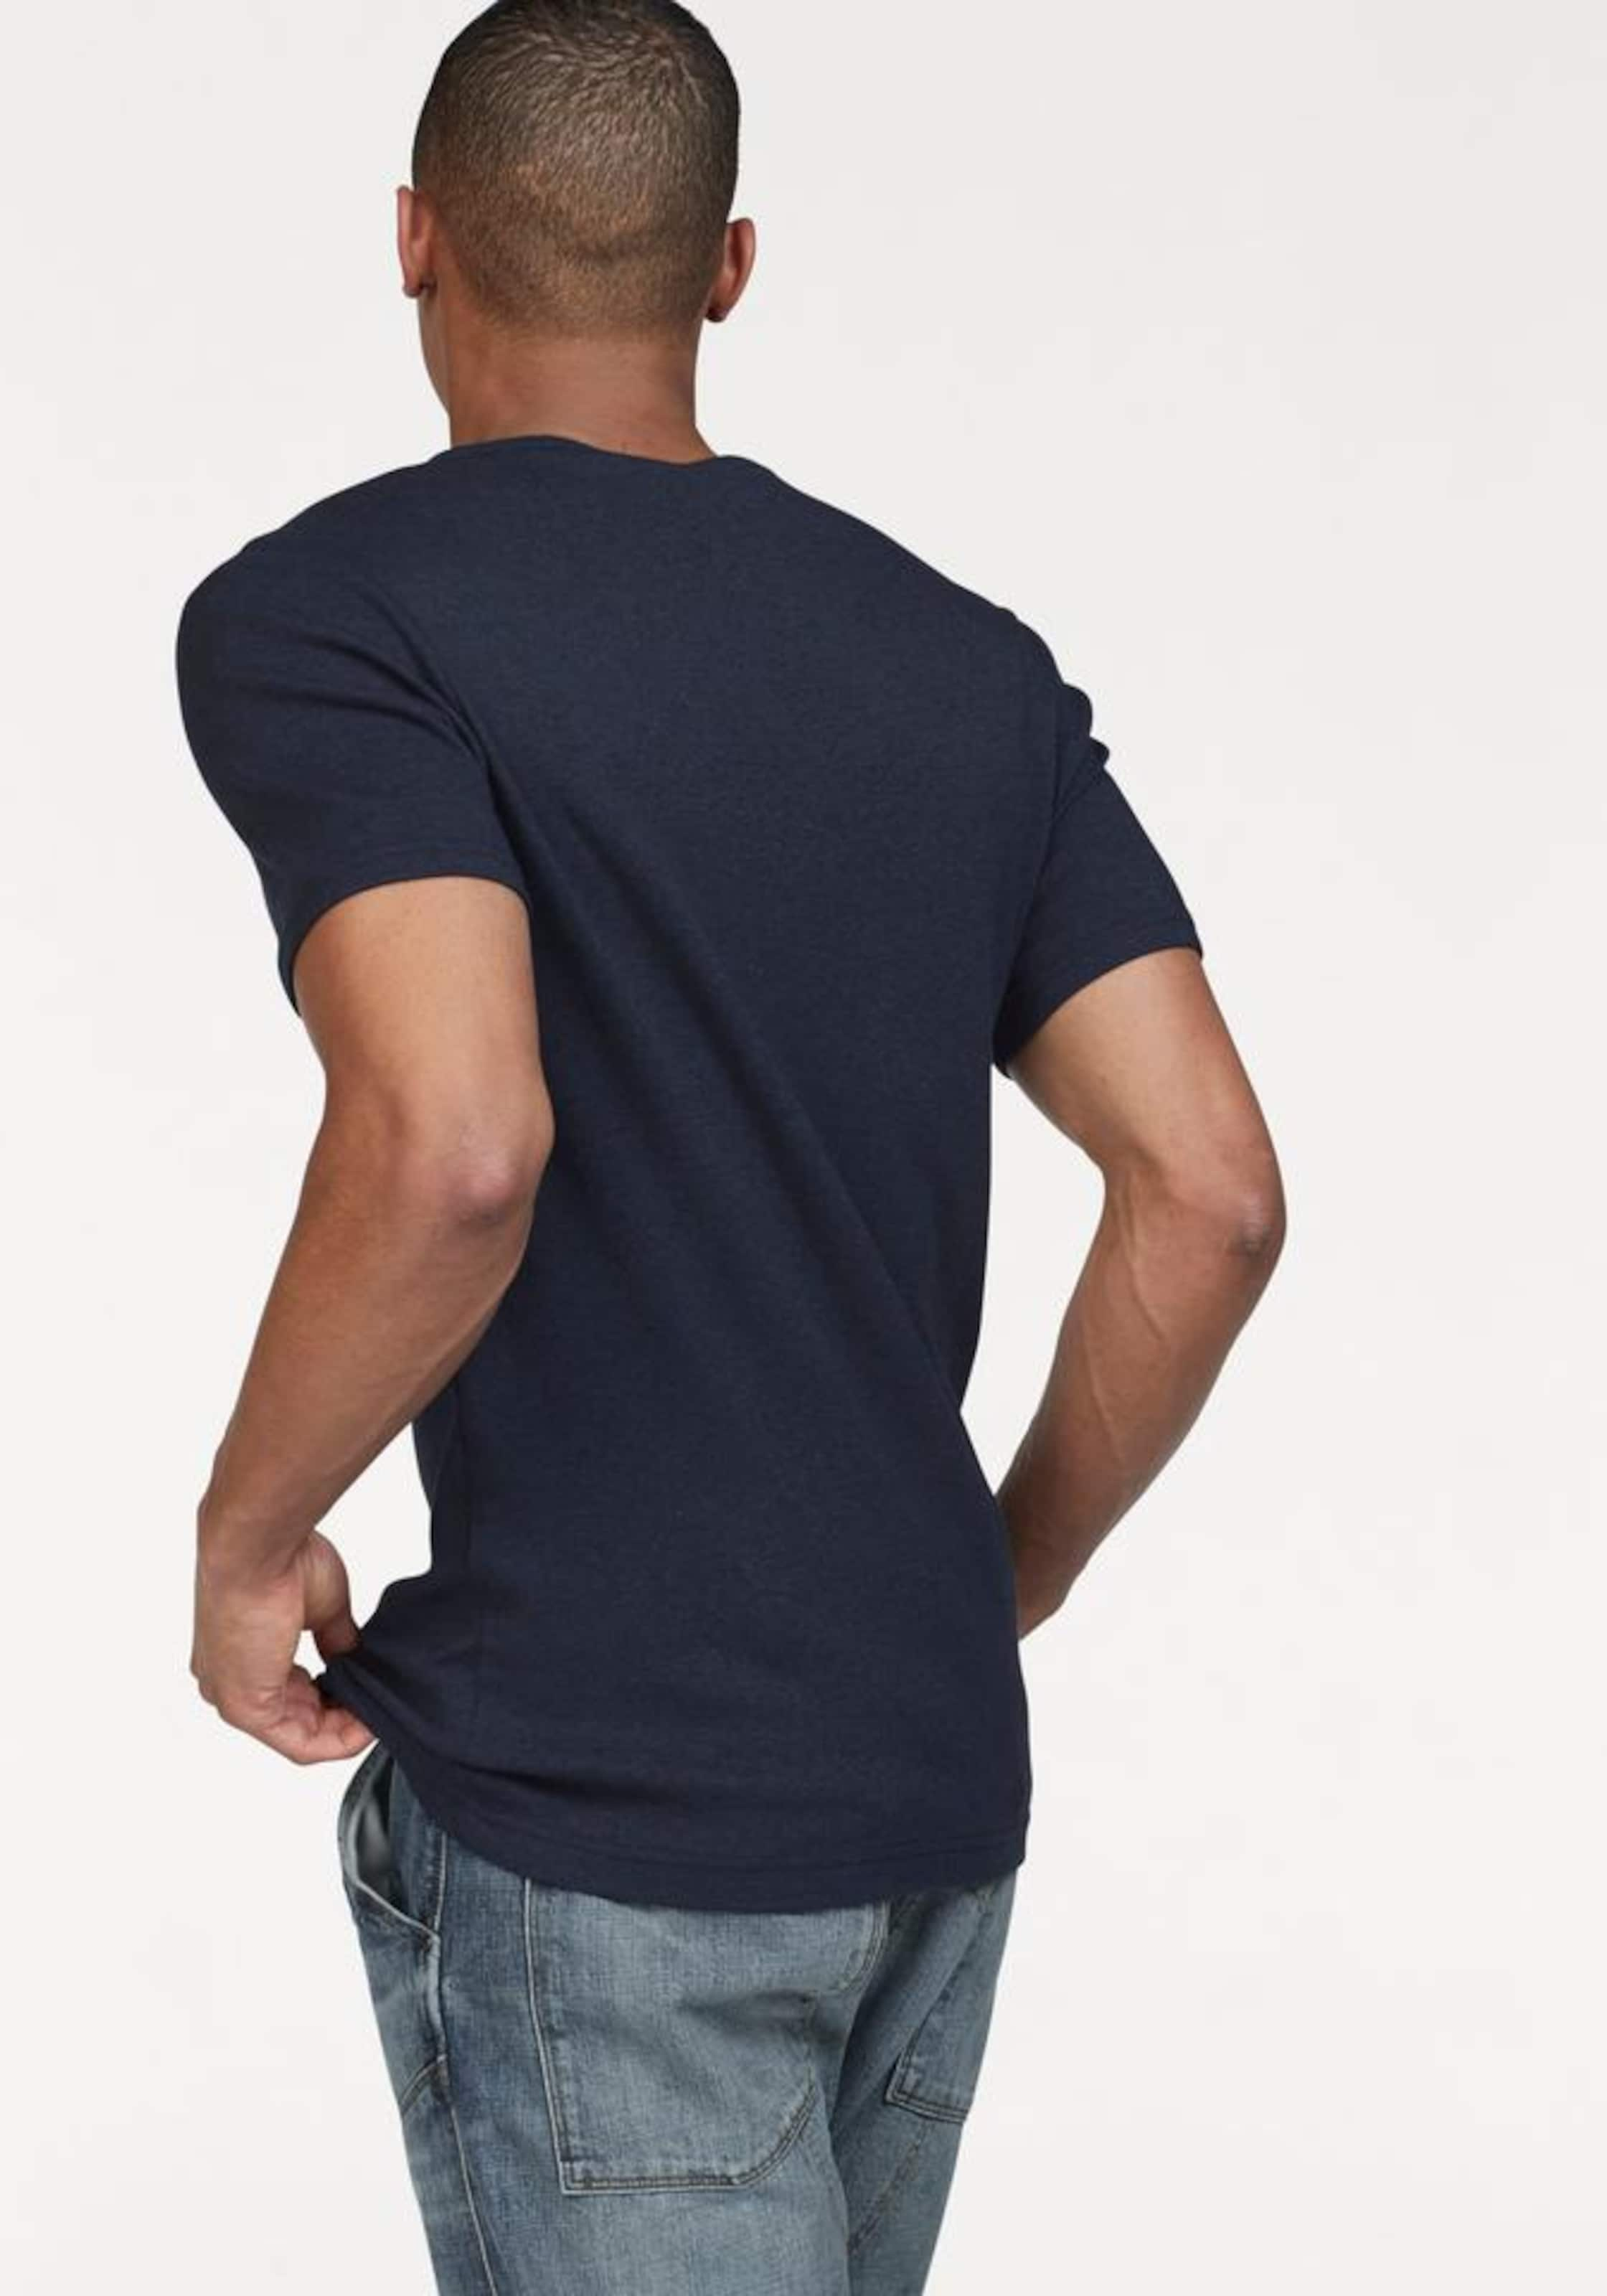 G-STAR RAW 'Drillion' T-Shirt Vorbestellung ITX0Ch